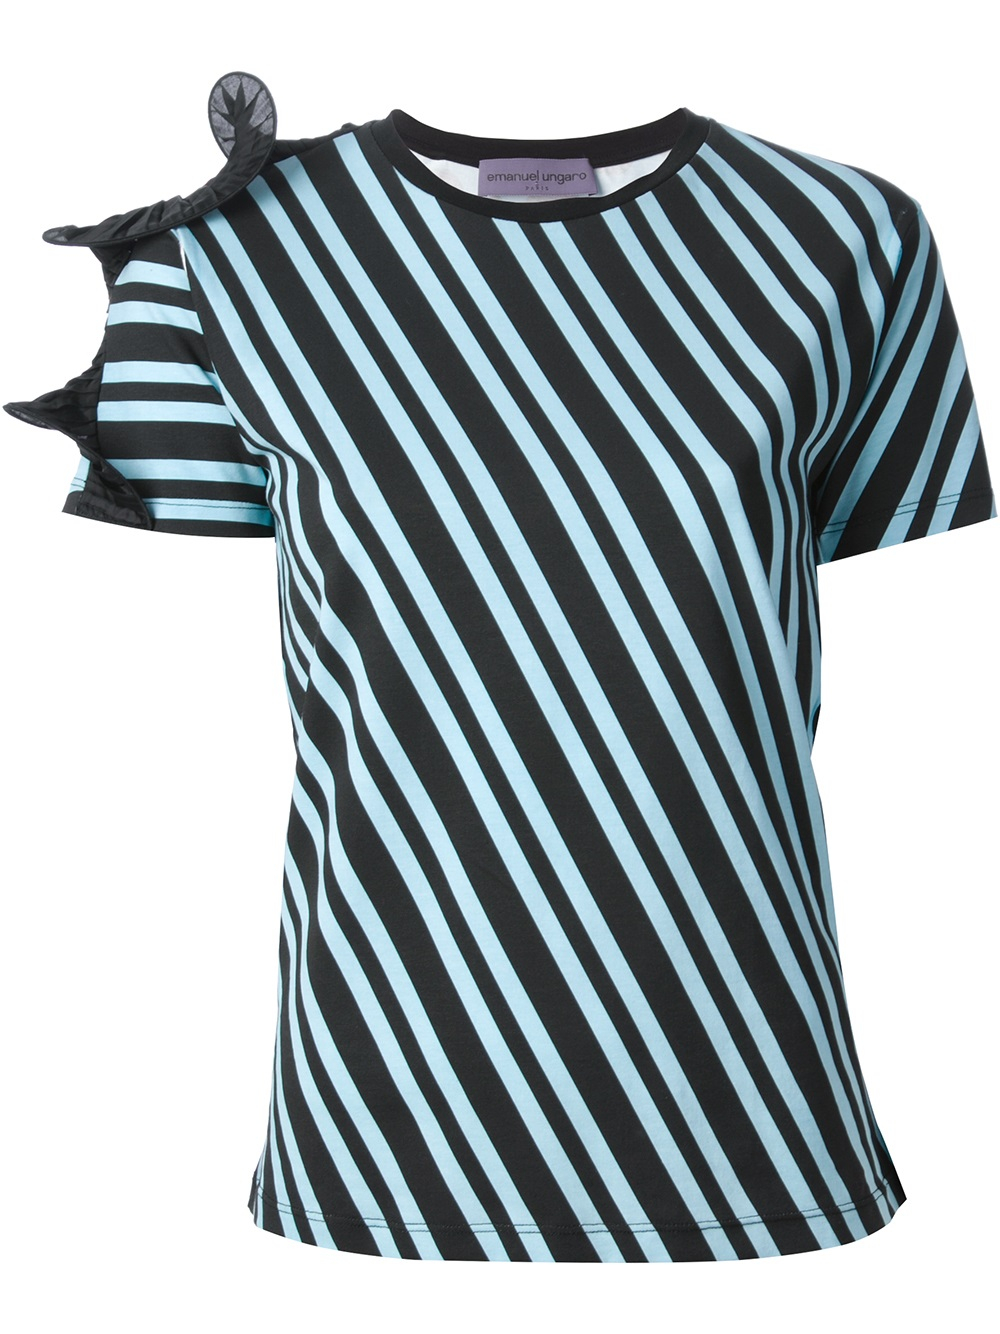 Lyst emanuel ungaro striped polka dot top in green for Striped and polka dot pumpkins